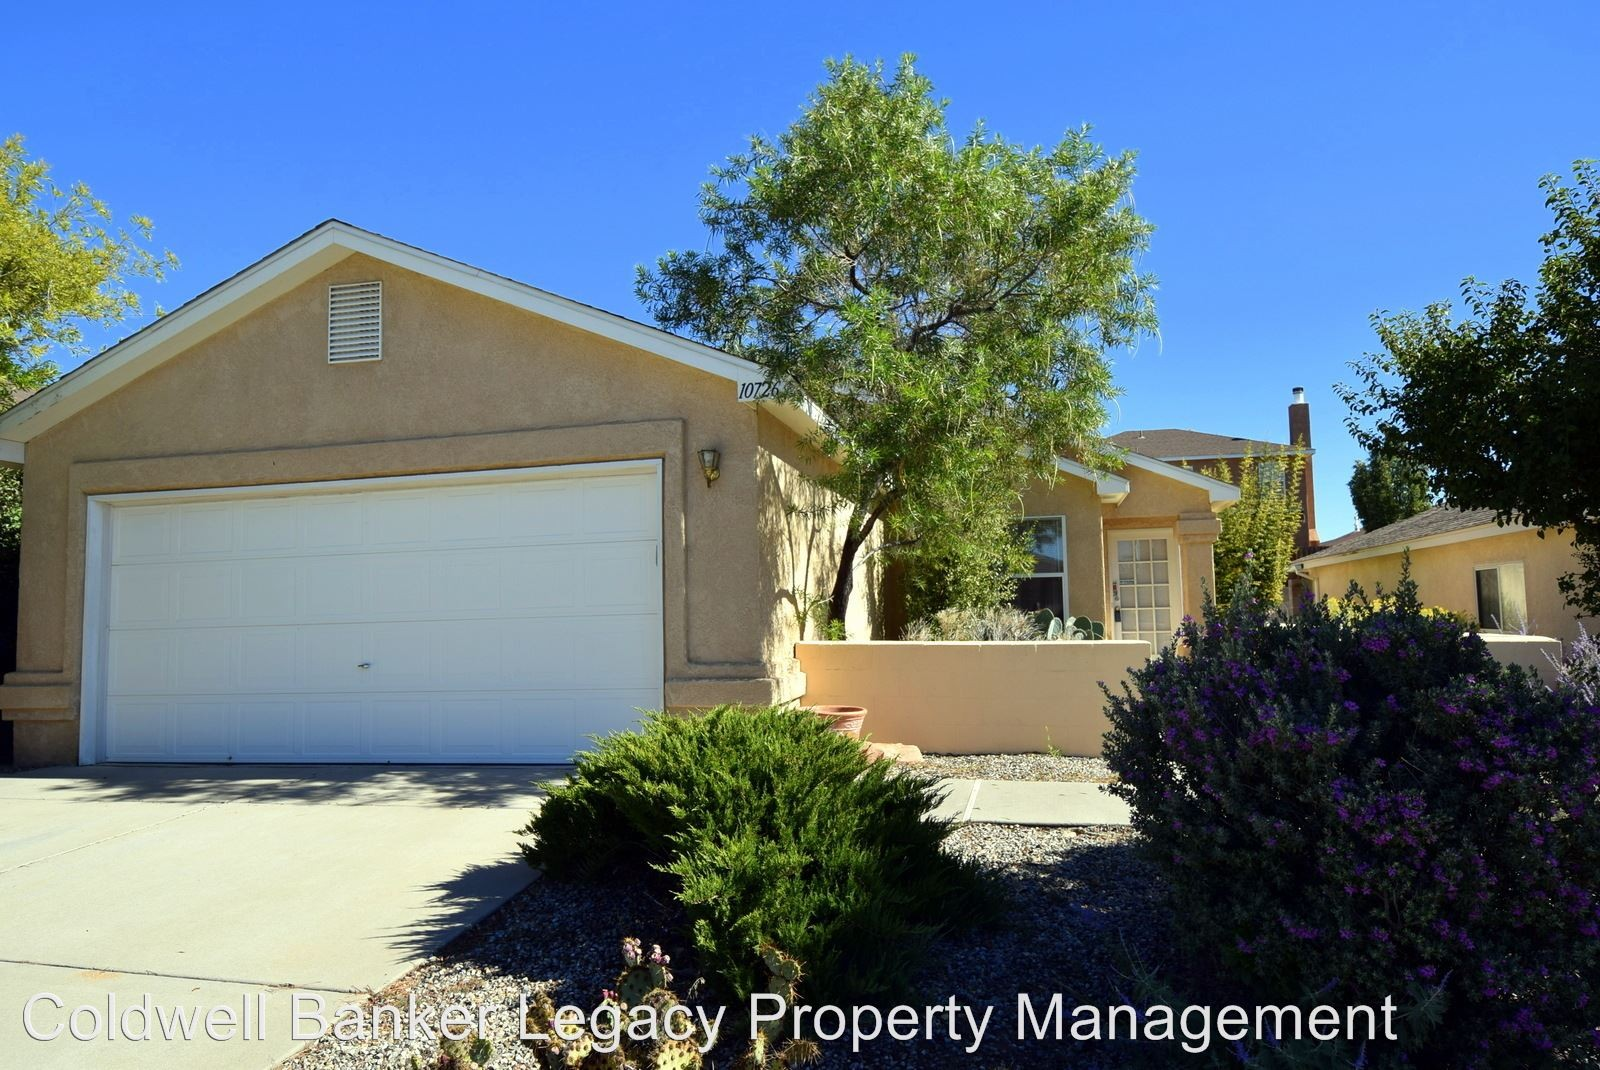 10726 Del Sol Park Dr Nw Albuquerque Nm 87114 3 Bedroom House For Rent For 1 000 Month Zumper